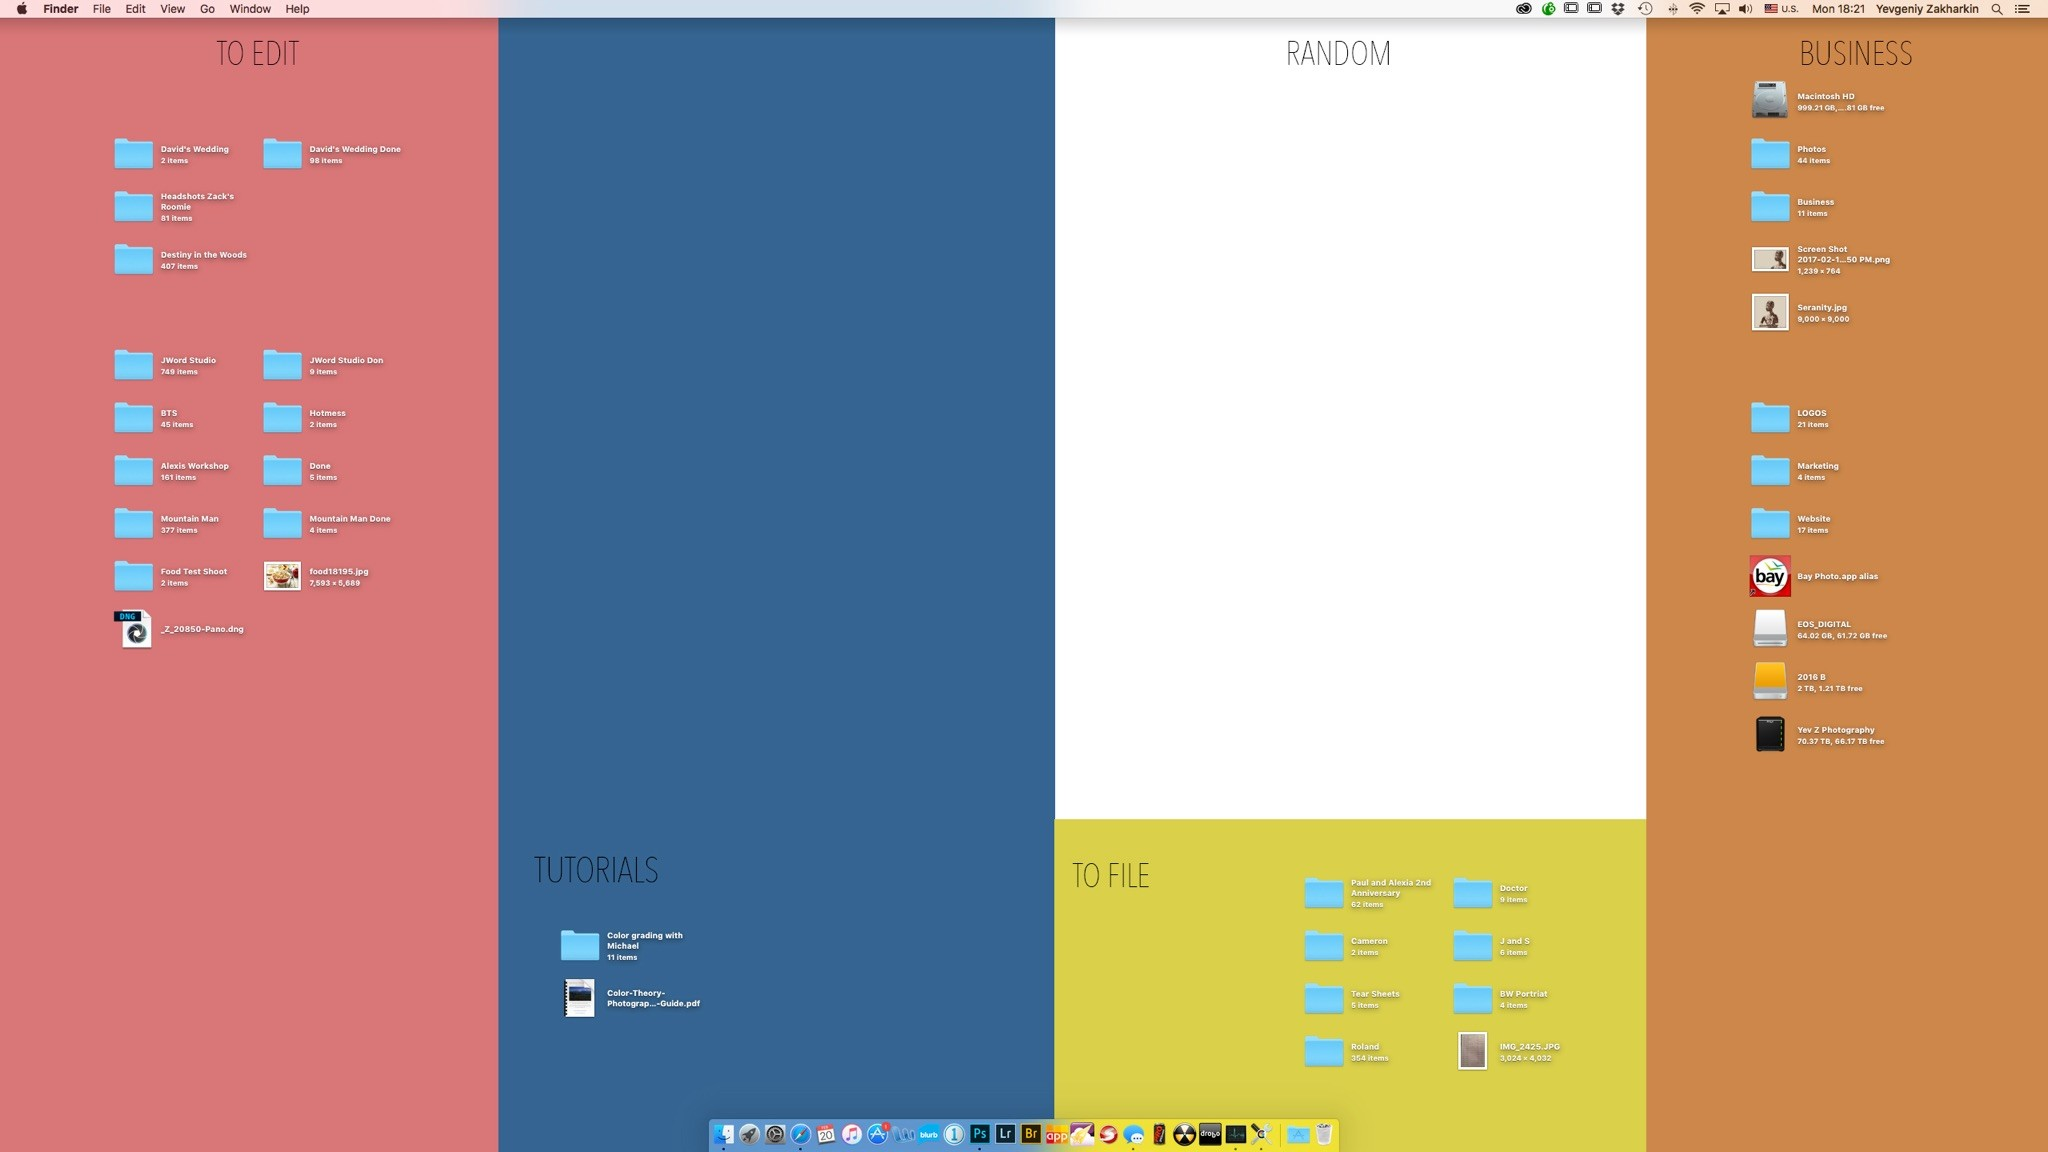 A Simple Way to Add Some Organization to Your Desktop